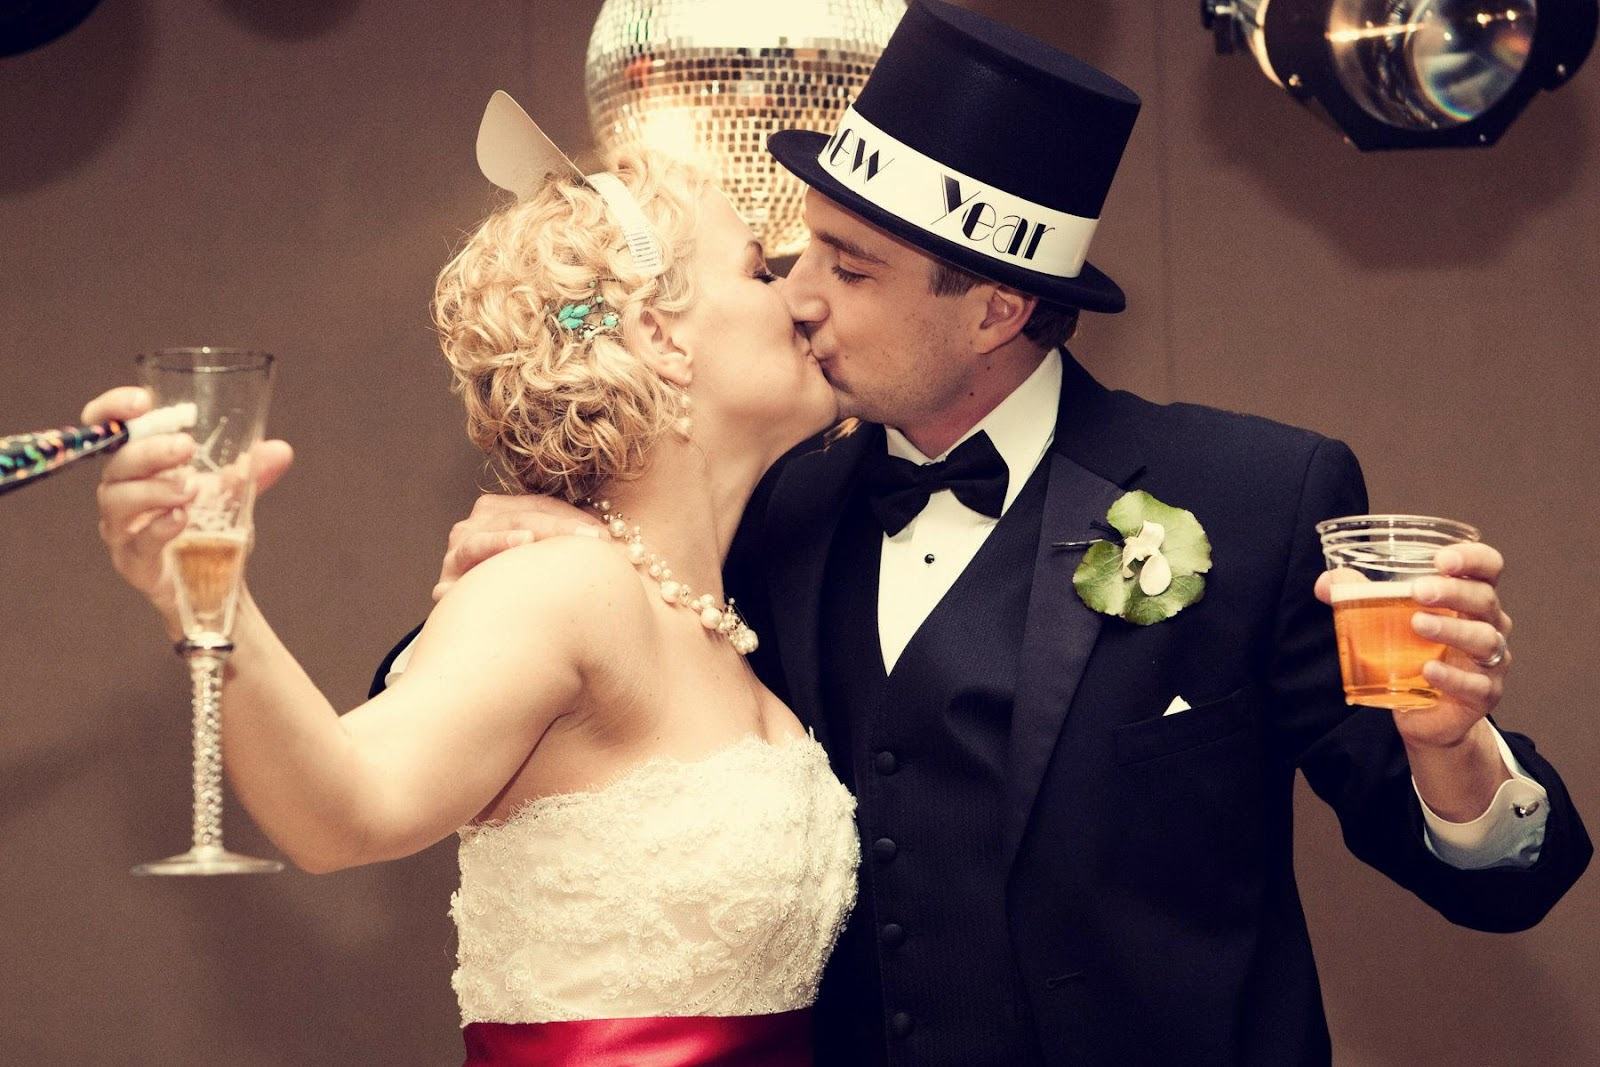 Couple kissing happy new year hd free image